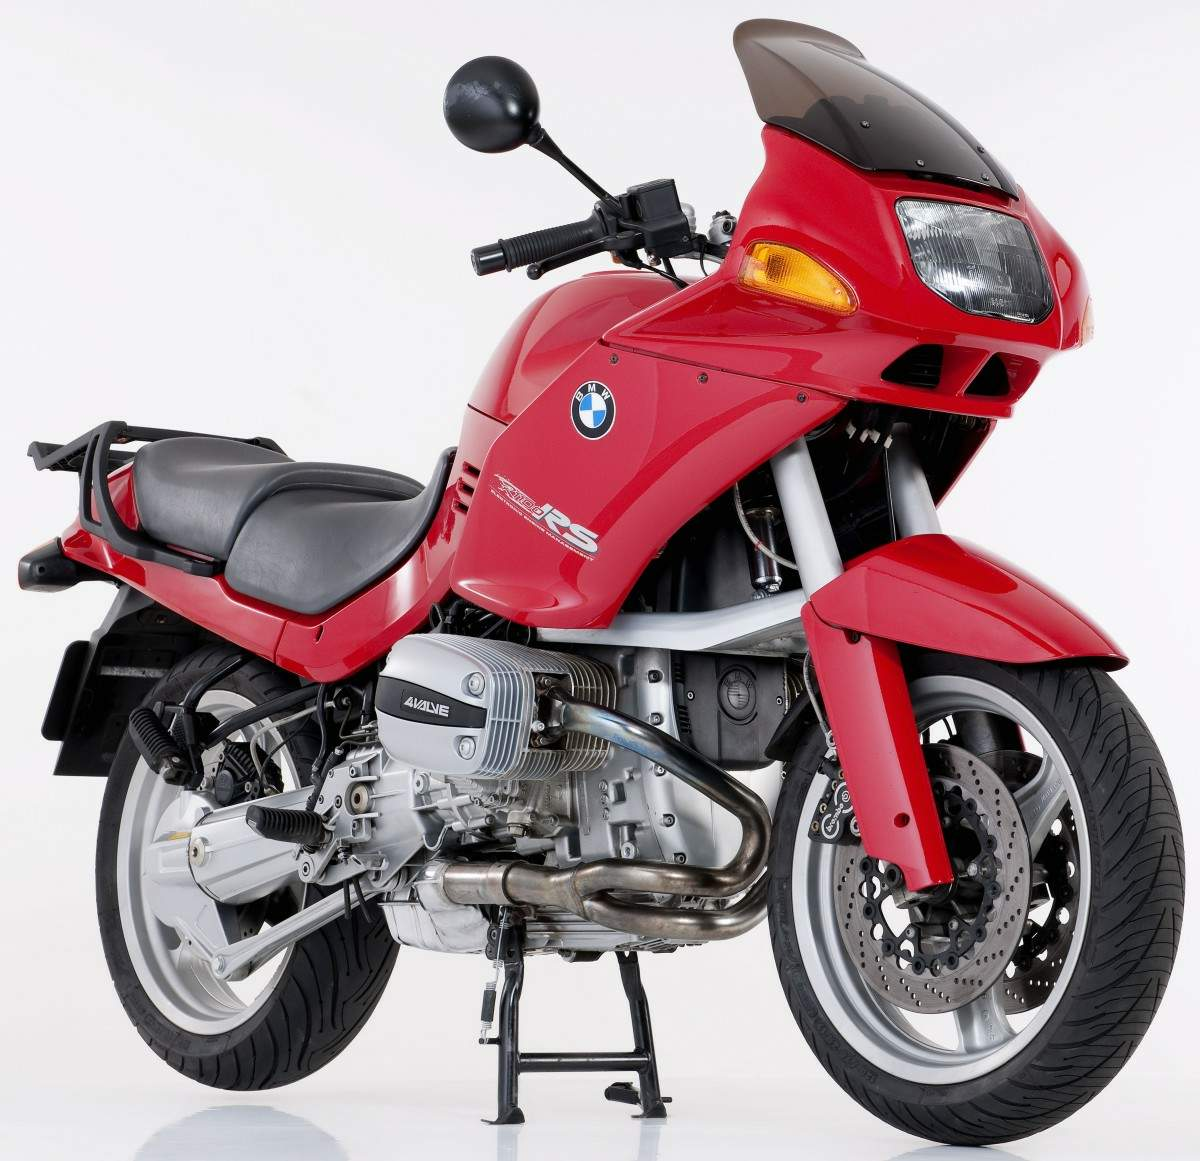 bmw r 1100 rs specs 1993 1994 autoevolution. Black Bedroom Furniture Sets. Home Design Ideas